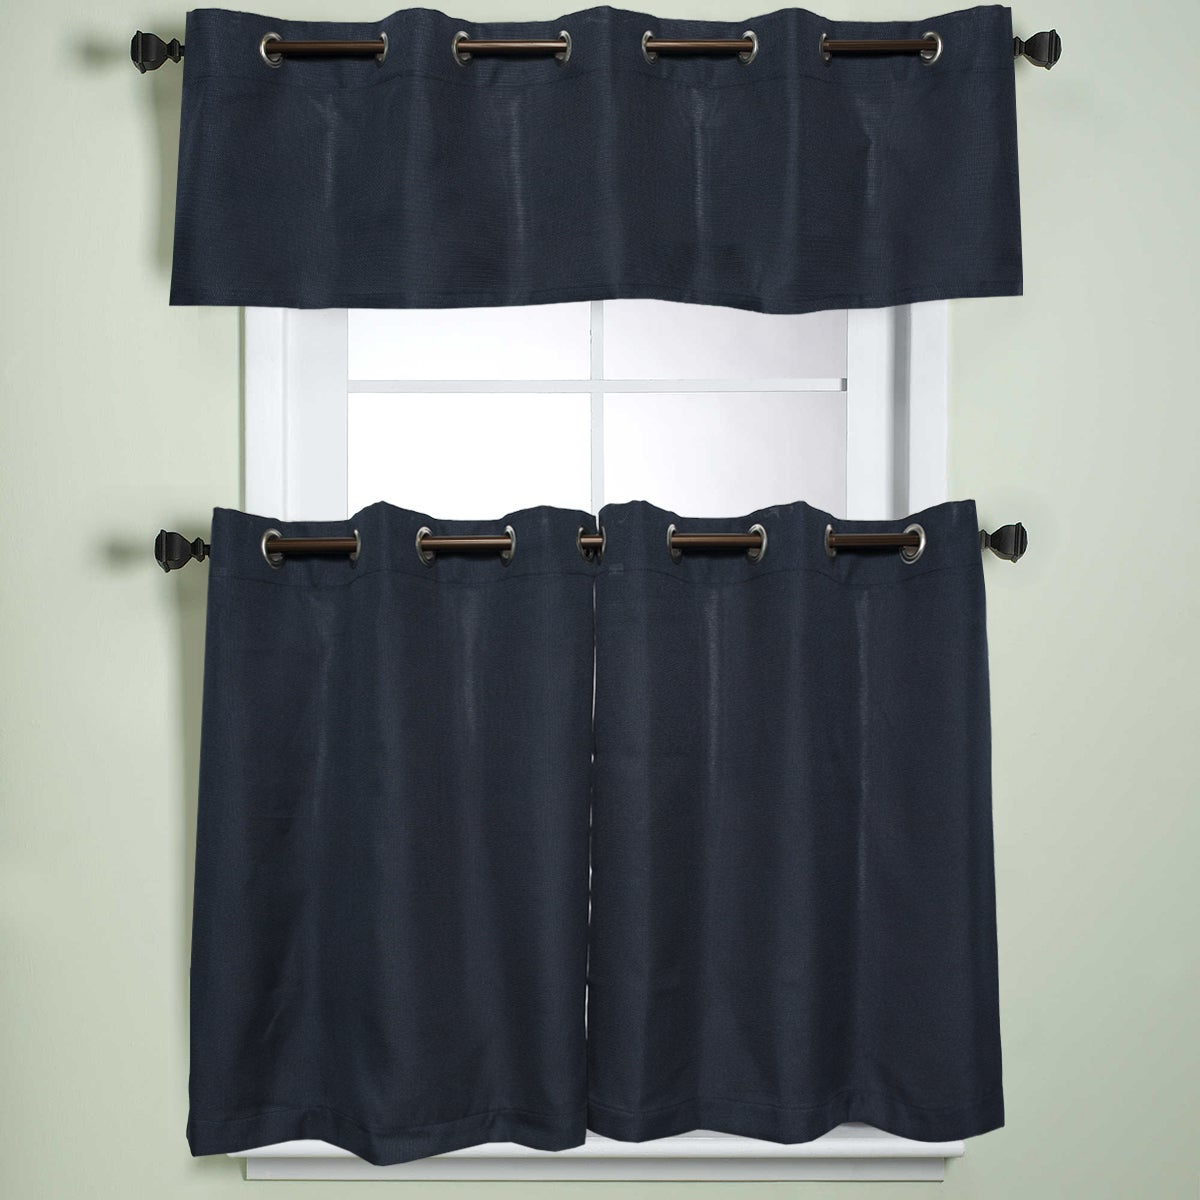 Fashionable Modern Subtle Texture Solid Navy Kitchen Curtain Parts With Grommets Tier And Valance Options In Modern Subtle Texture Solid Red Kitchen Curtains (View 6 of 20)